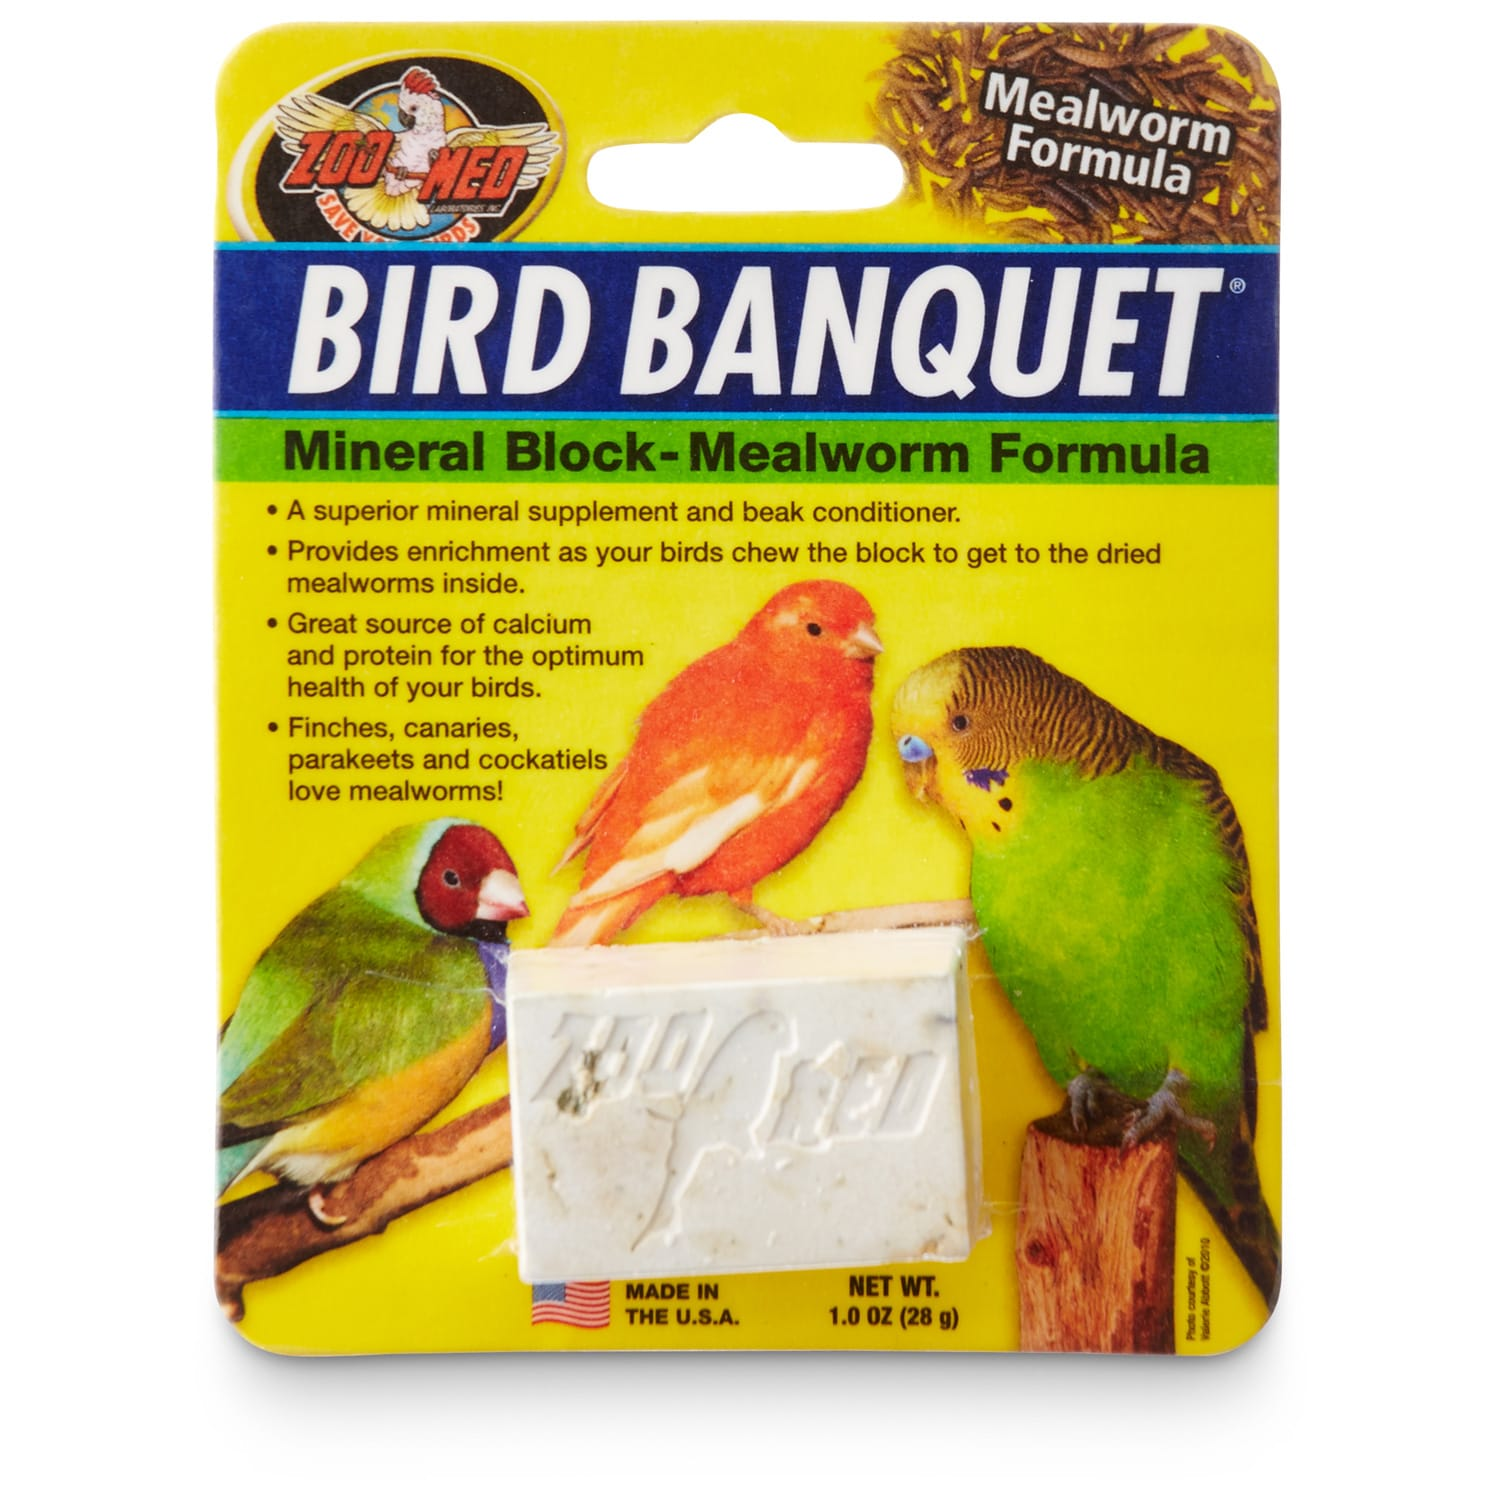 1 oz., Small, A superior mineral supplement and beak conditioner. Also a great source of calcium for the optimum health of your bird. Provides enrichment as your bird chews the block.